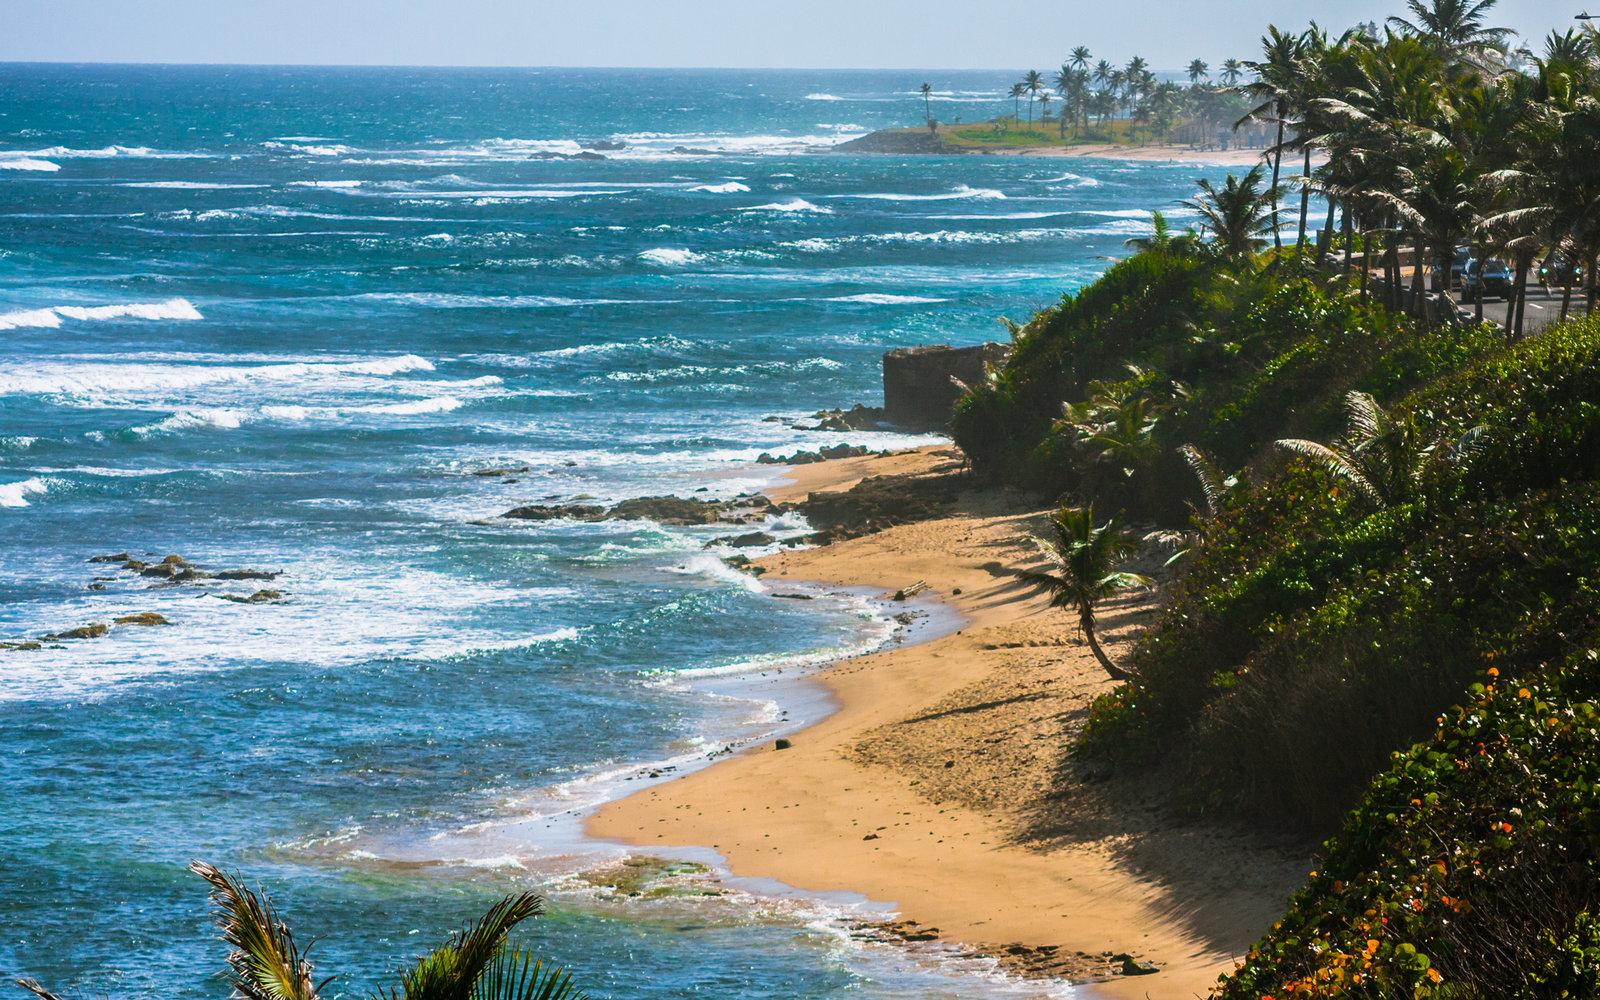 Do You Need A Passport To Visit Puerto Rico?